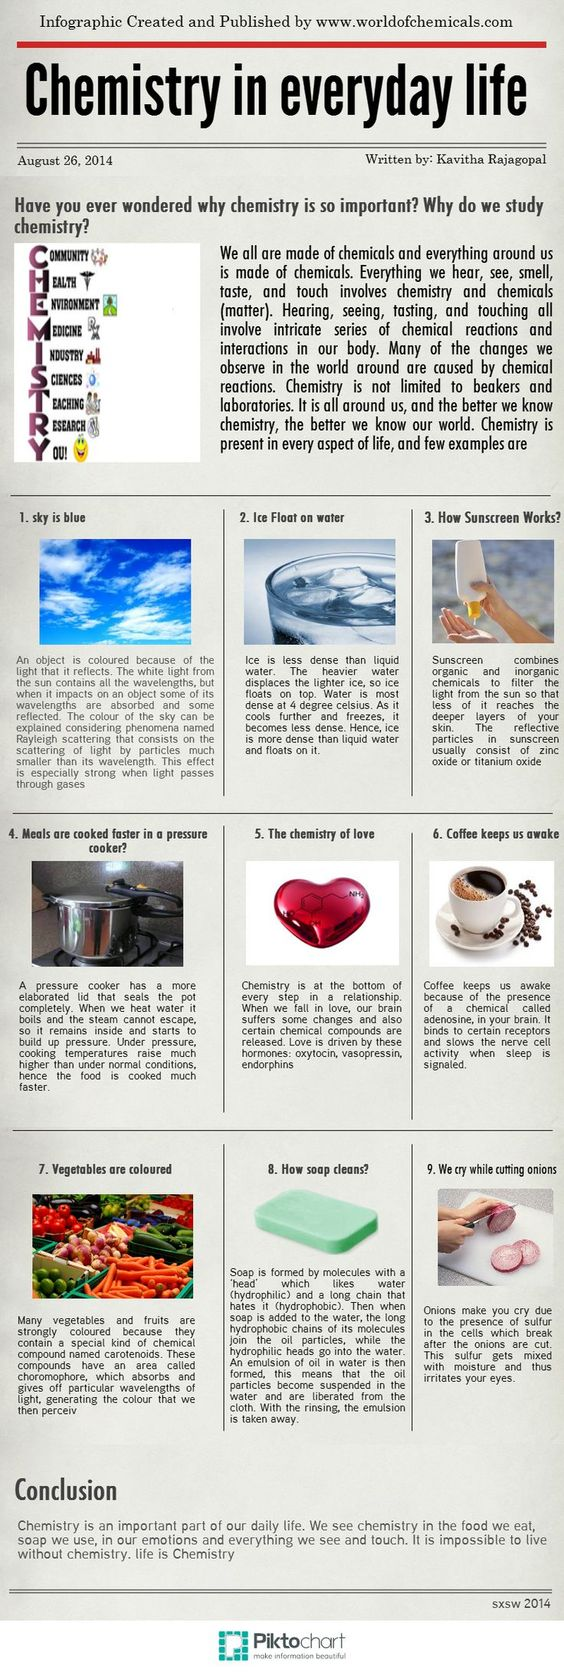 Chemistry in everyday life Have you ever wondered why chemistry is so important? Why do we study chemistry?  We all are made of chemicals and everything around us is made of chemicals. Everything we hear, see, smell, taste, and touch involves chemistry and chemicals (matter). Hearing, seeing, tasting, and touching all involve intricate series of chemical reactions and interactions in our body